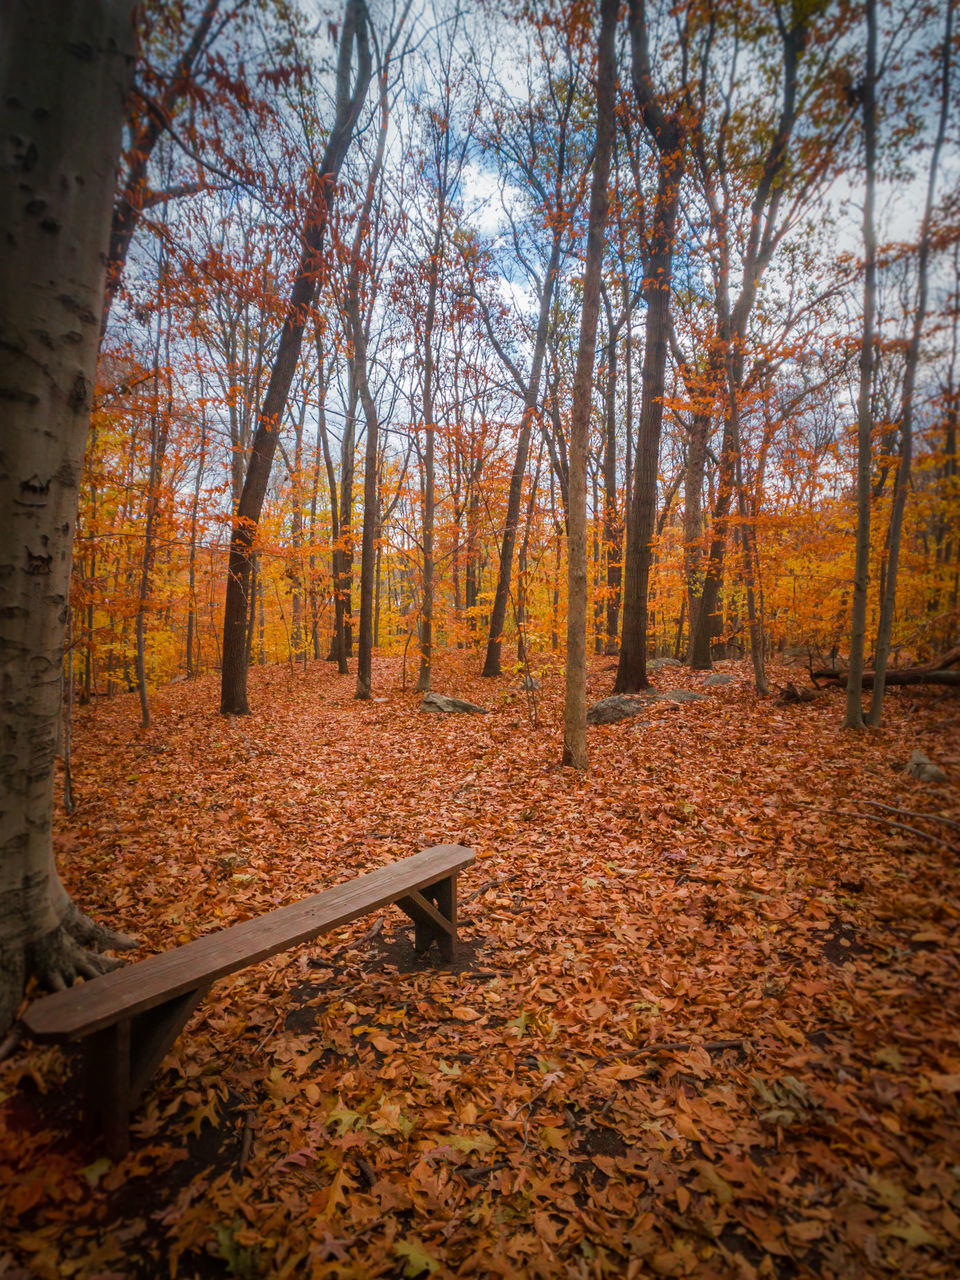 autumn, change, leaf, tree, nature, forest, beauty in nature, scenics, orange color, tranquility, tranquil scene, woodland, dry, day, outdoors, no people, tree trunk, branch, maple